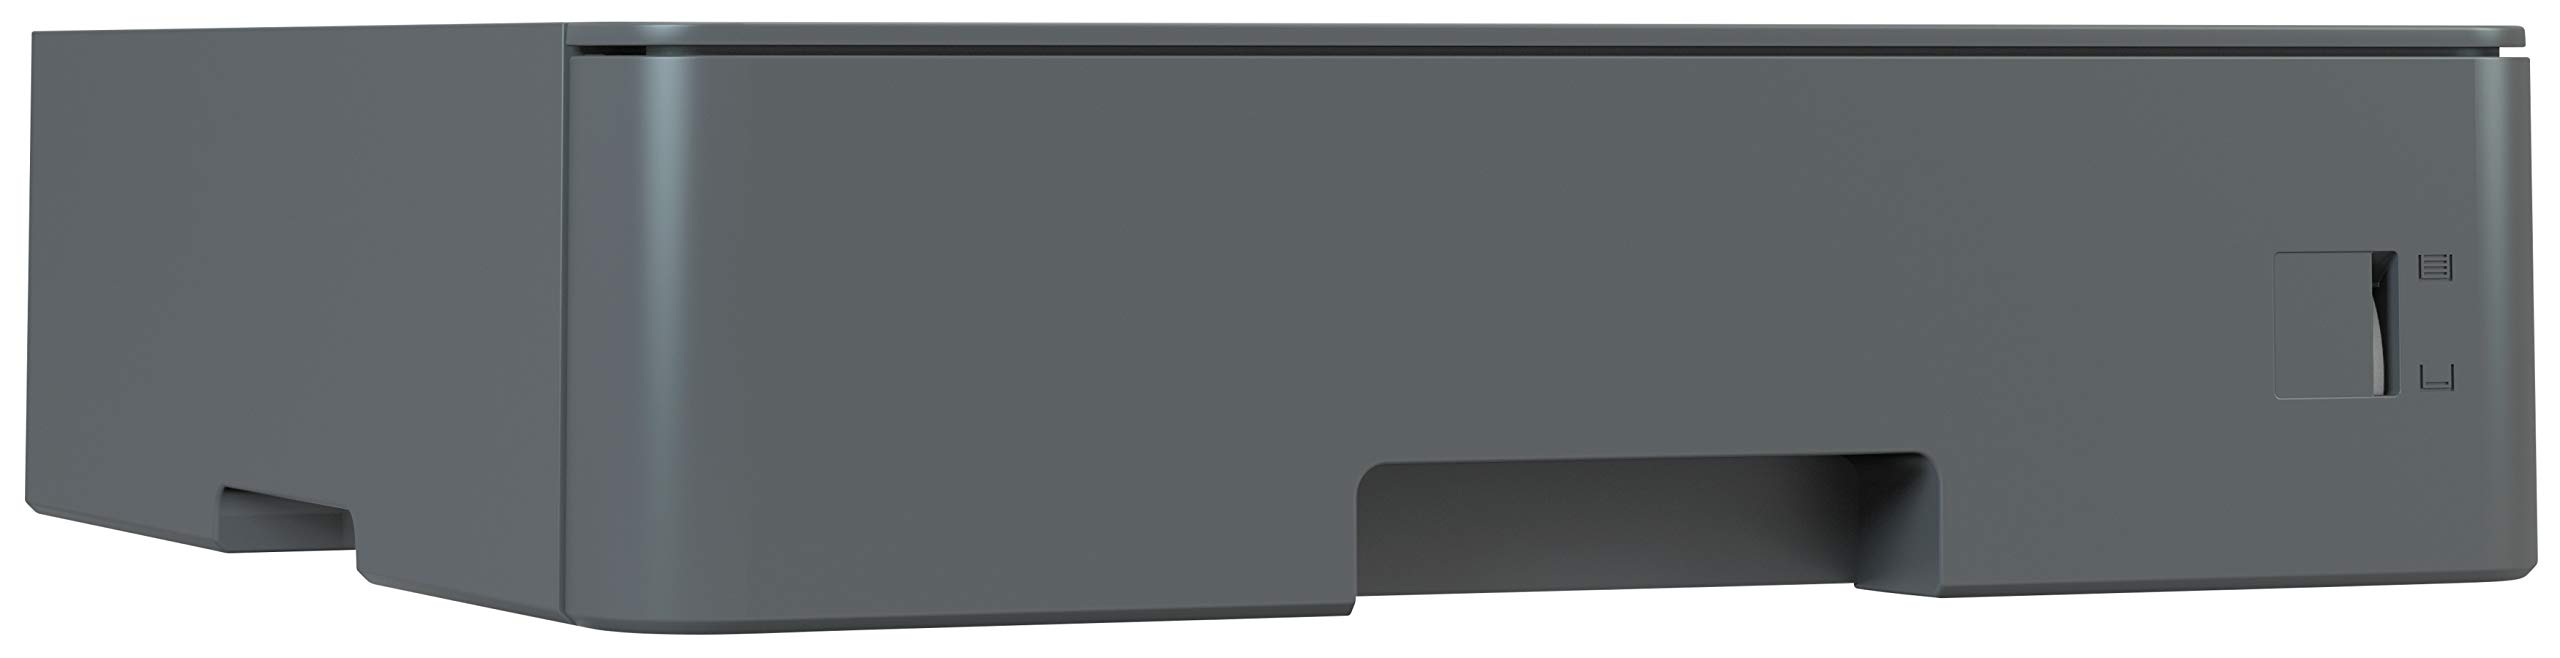 Brother Printer LT5500 Tray by Brother